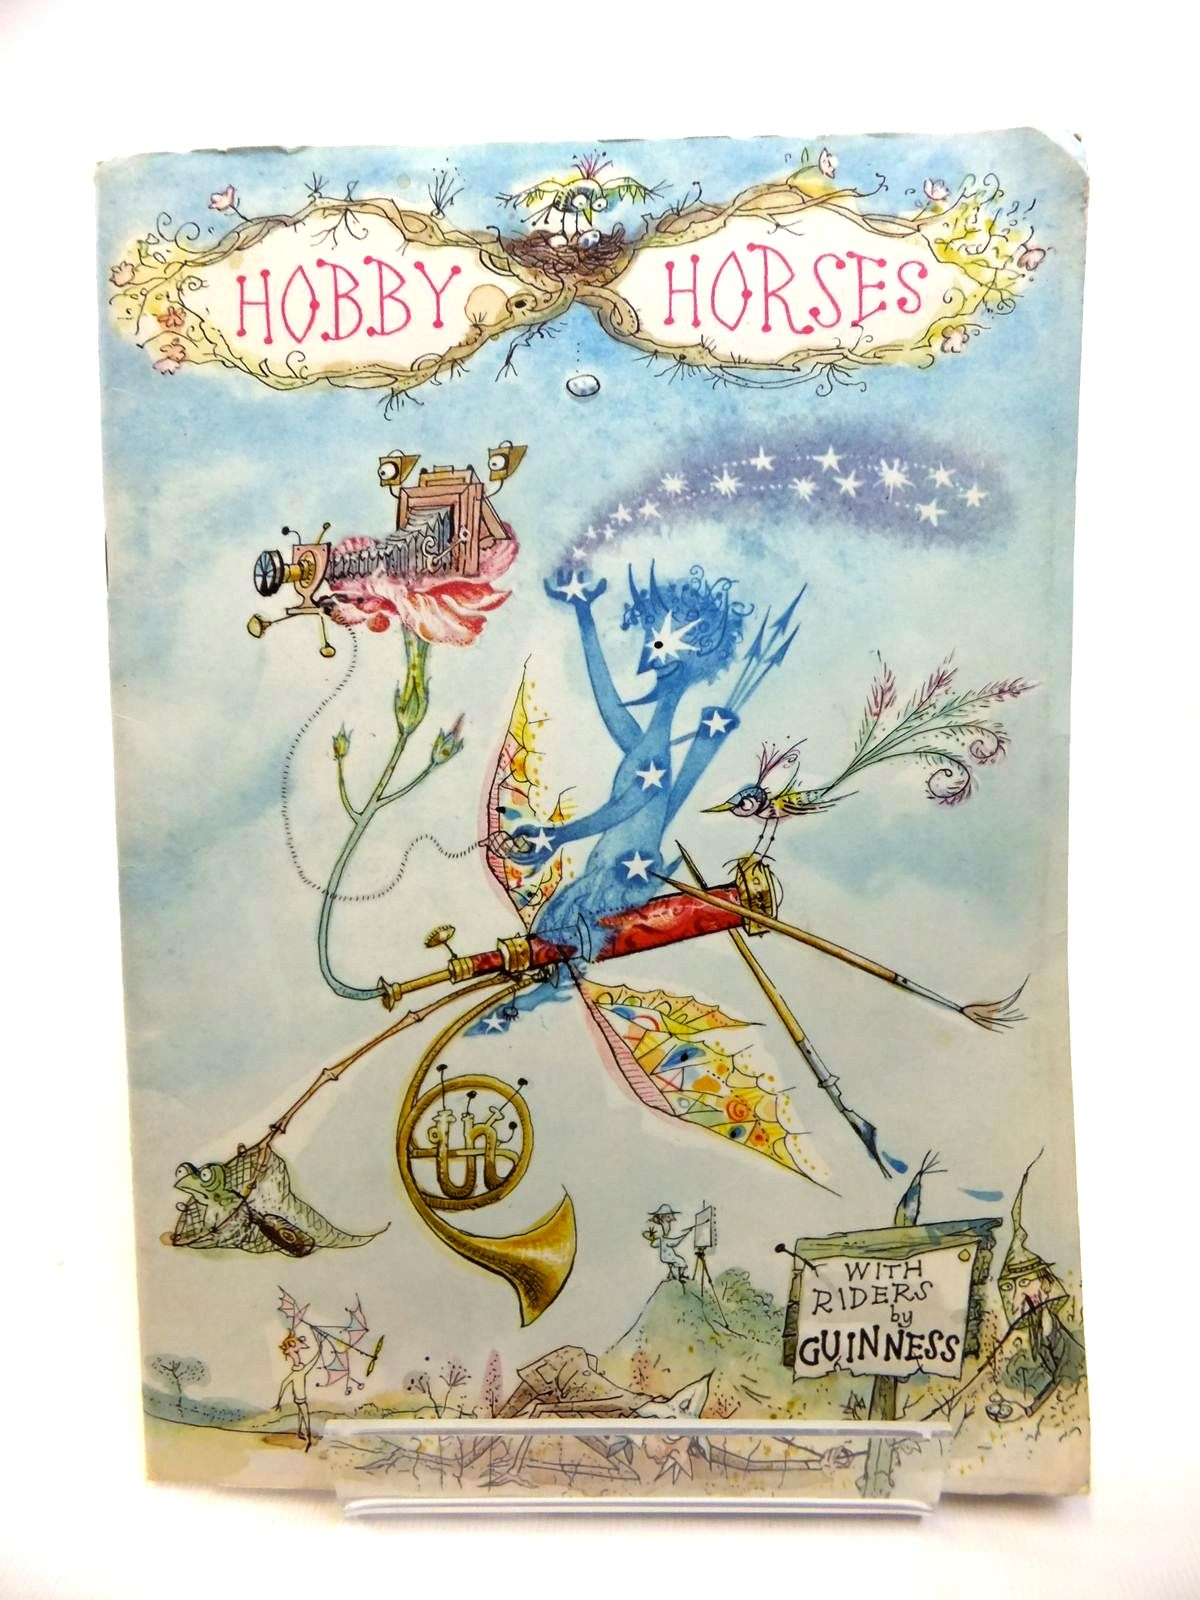 Photo of HOBBY HORSES WITH RIDERS BY GUINNESS written by Penn, Stanley illustrated by Emett, Rowland published by Guinness Publishing (STOCK CODE: 1812309)  for sale by Stella & Rose's Books